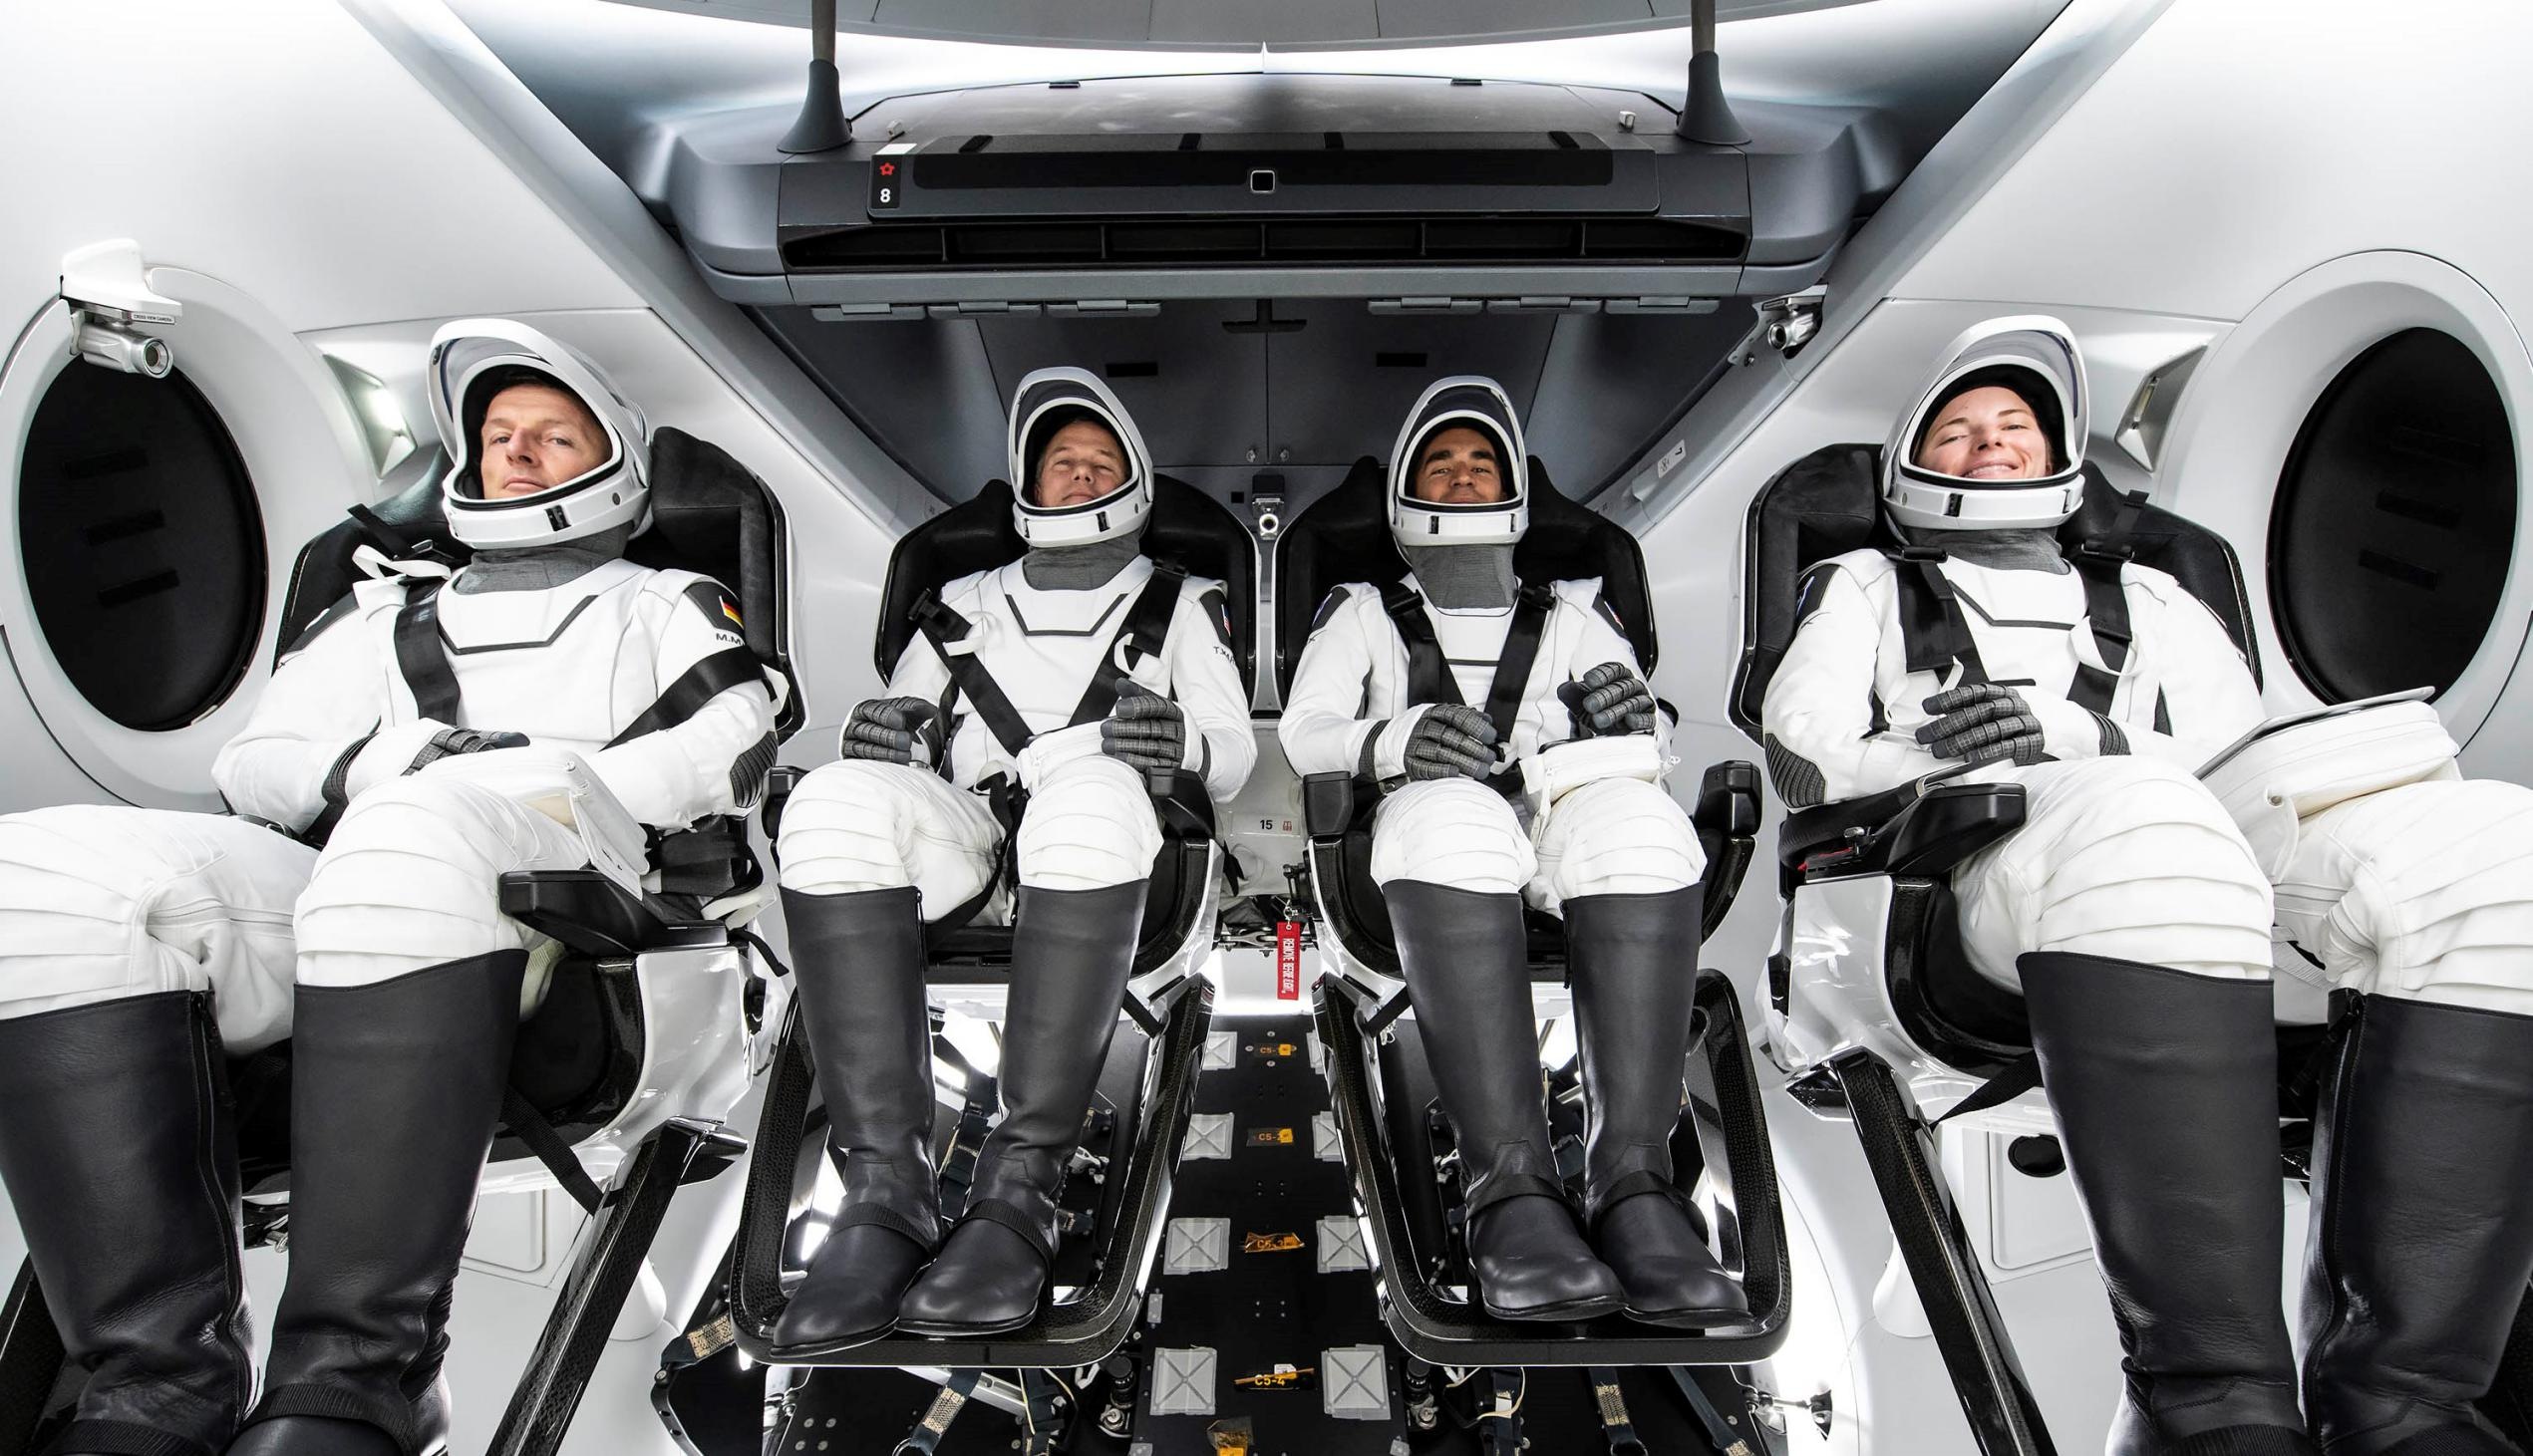 SpaceX's next Crew Dragon astronaut mission settles on Halloween launch